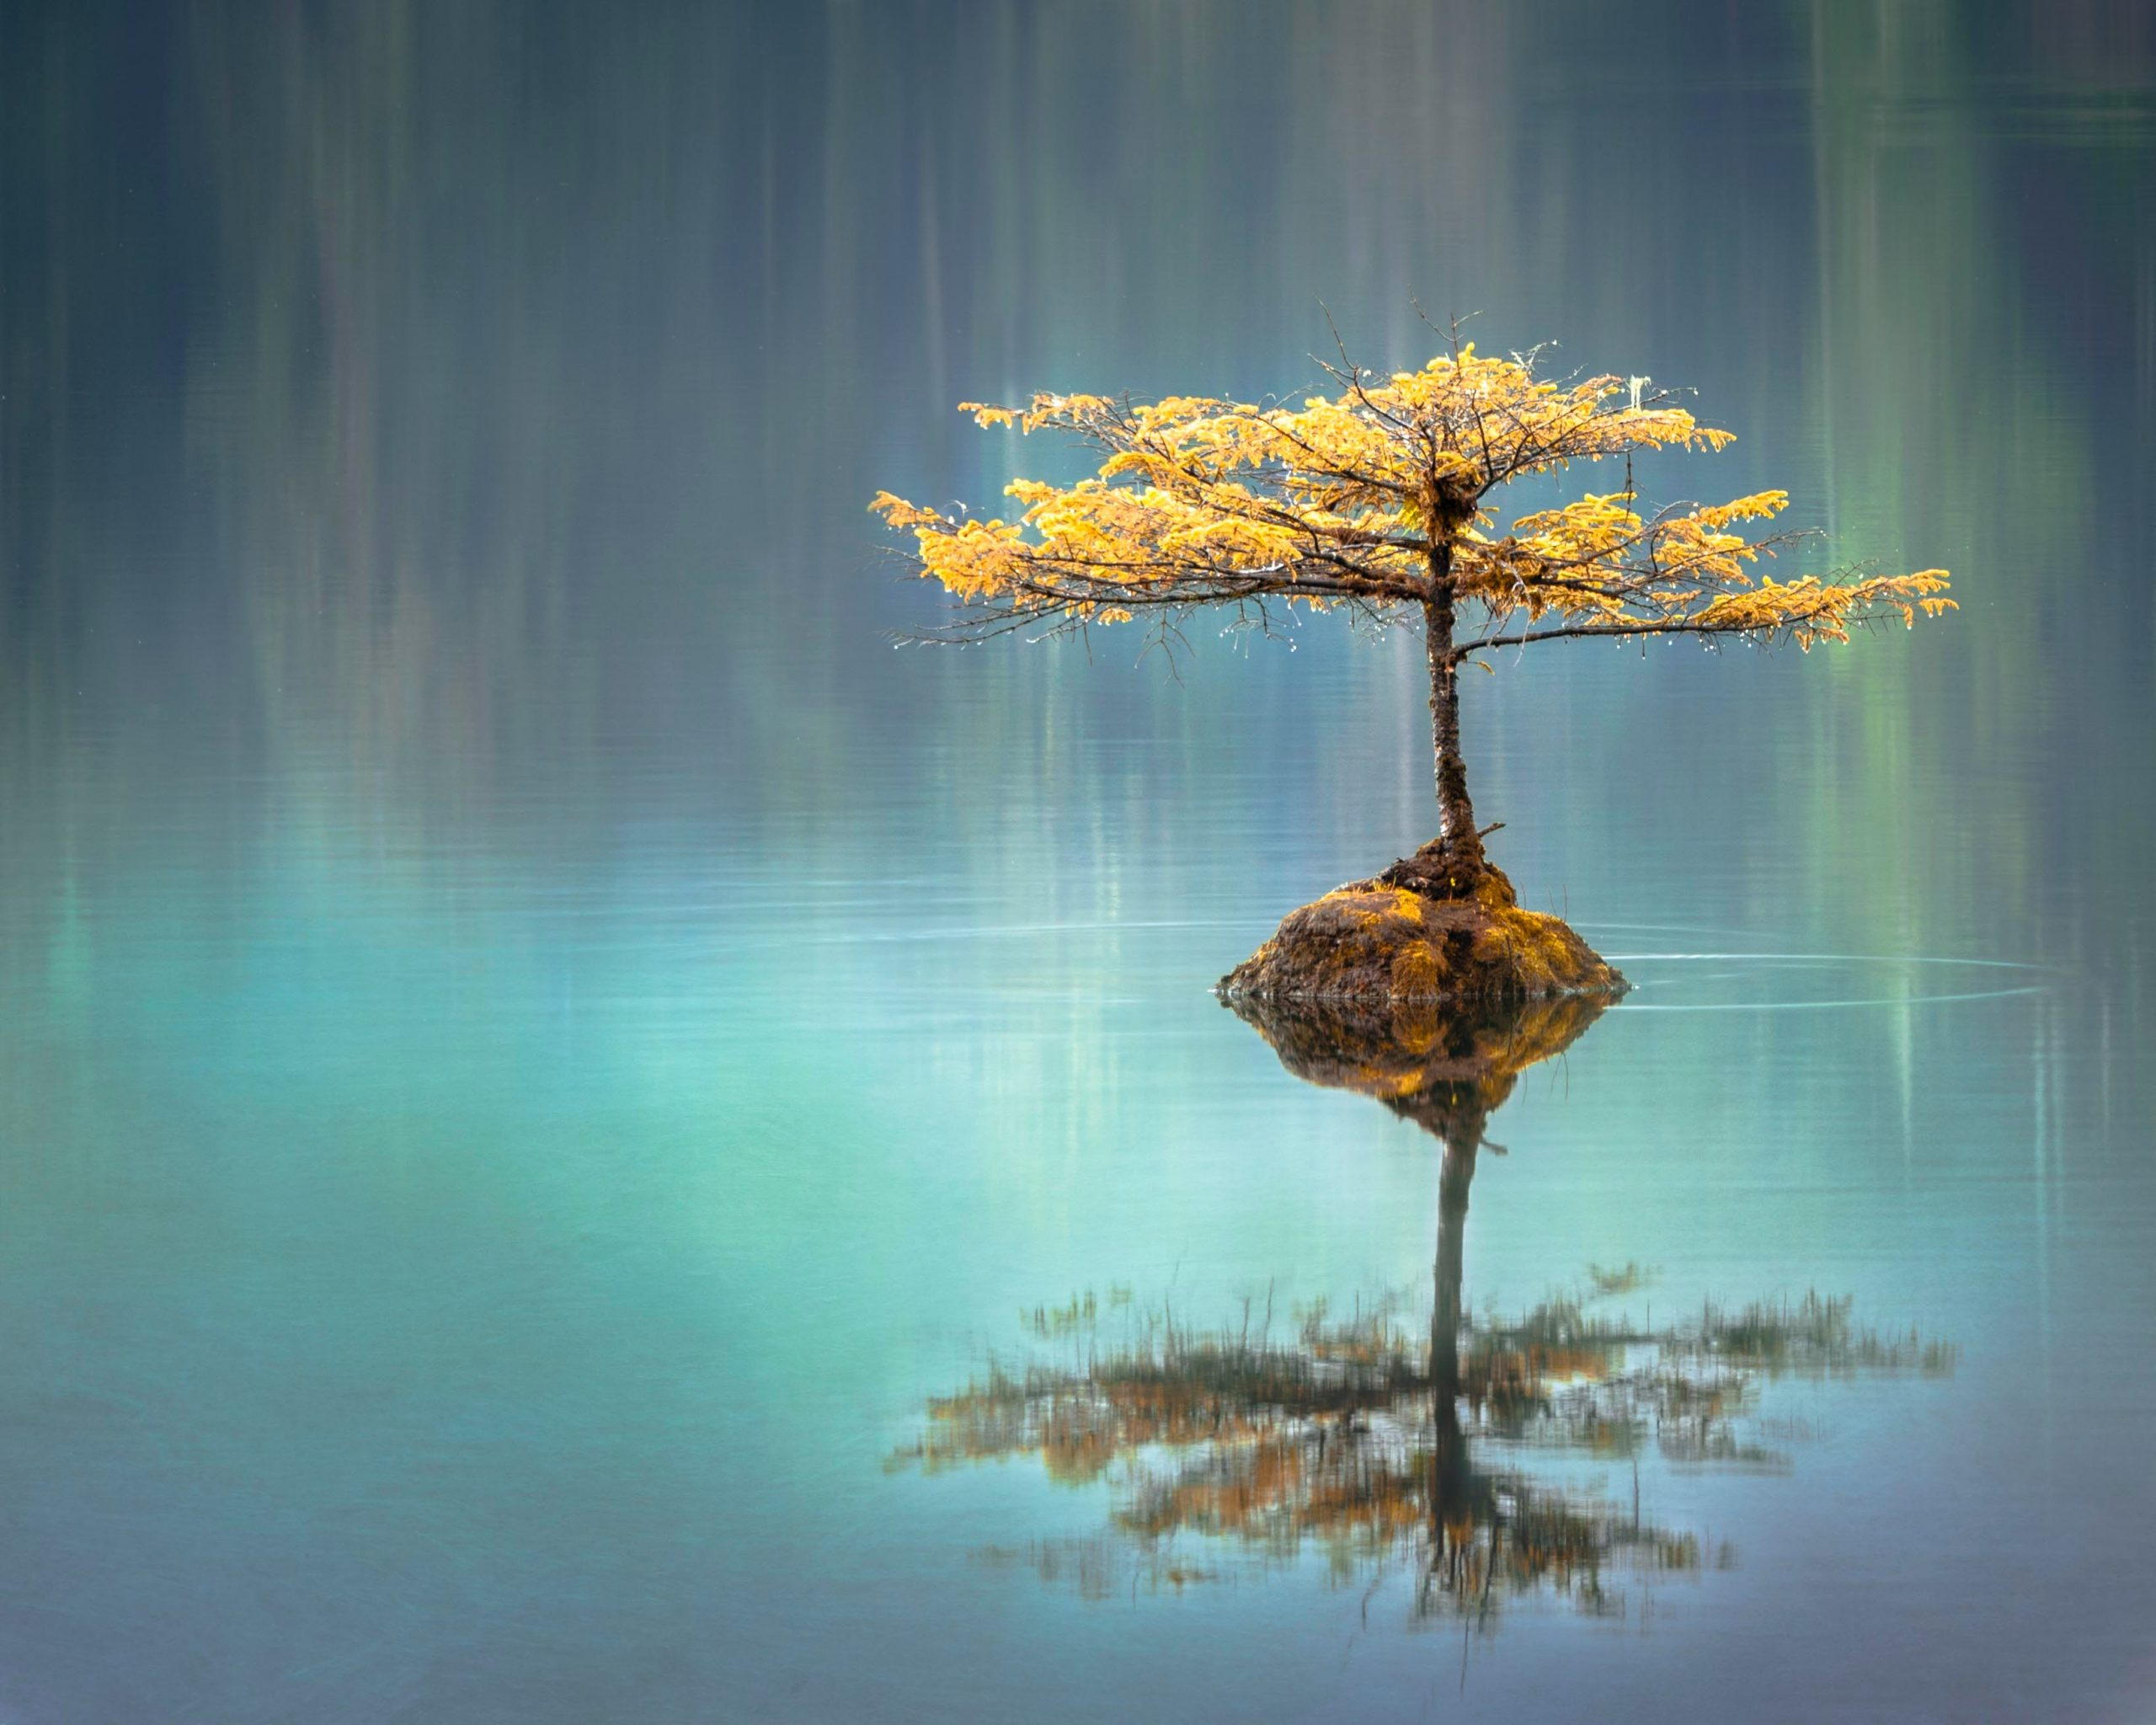 Tree in a lake